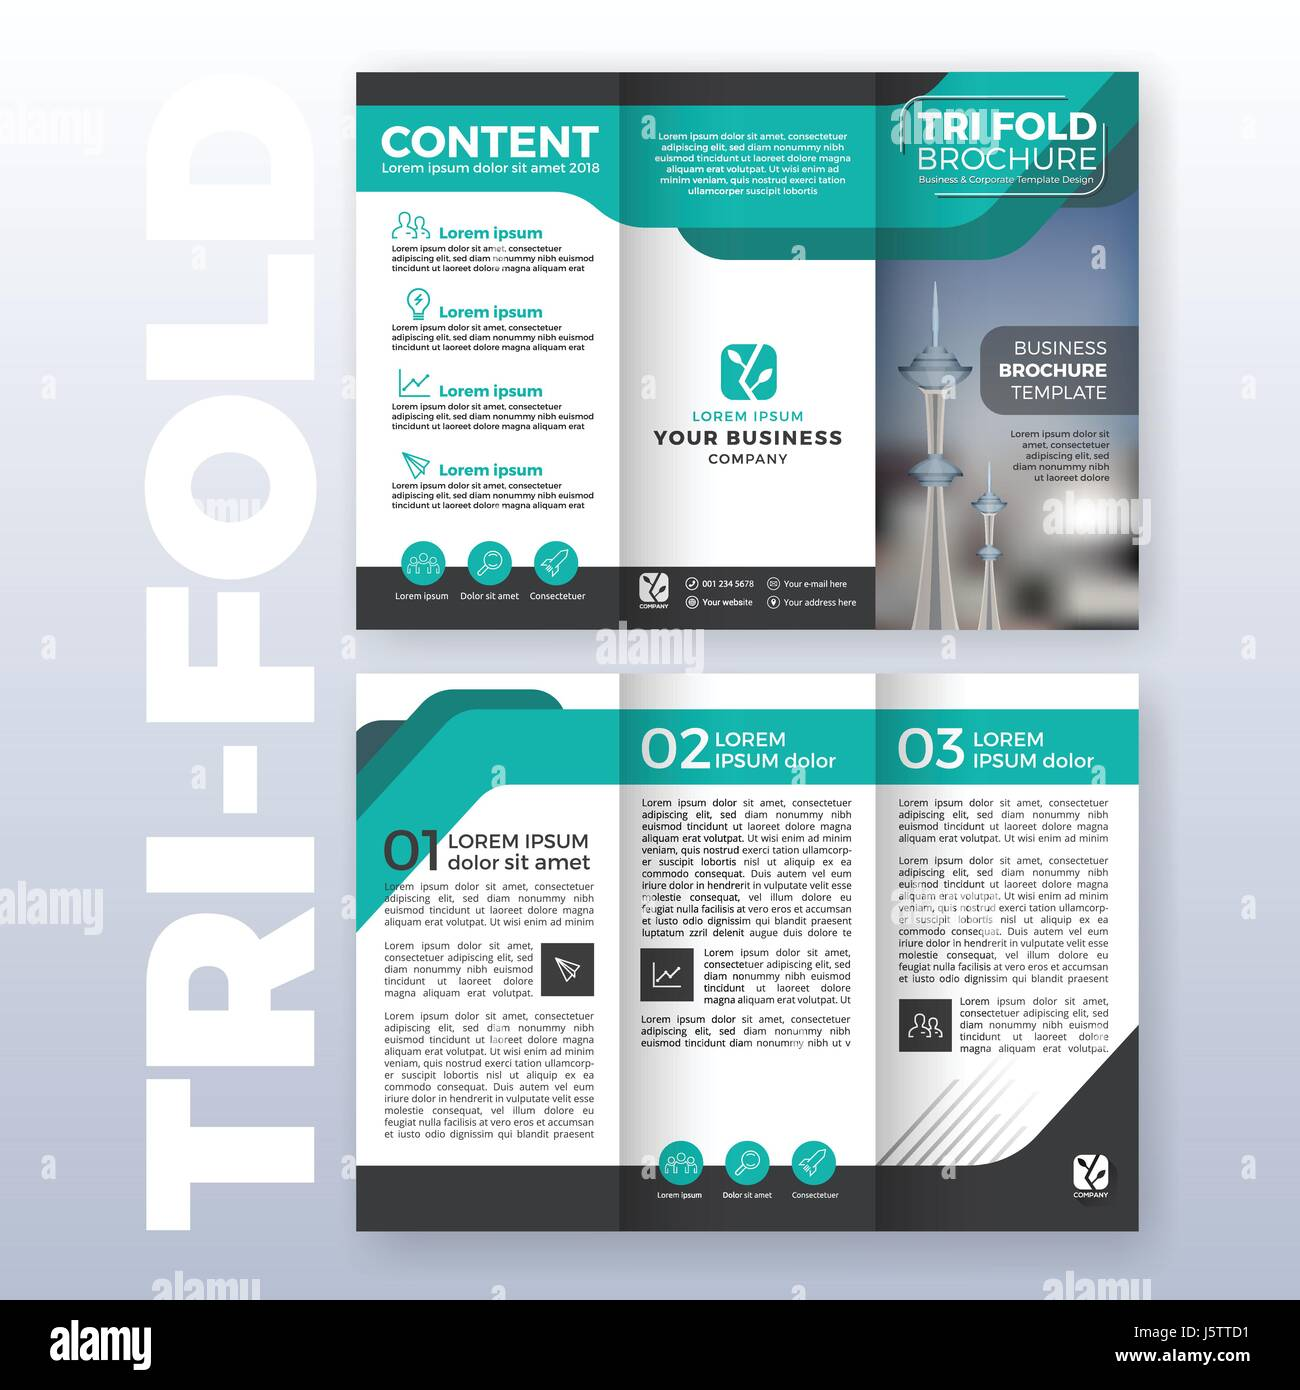 Tri fold stock photos tri fold stock images alamy for Tri fold brochure templates